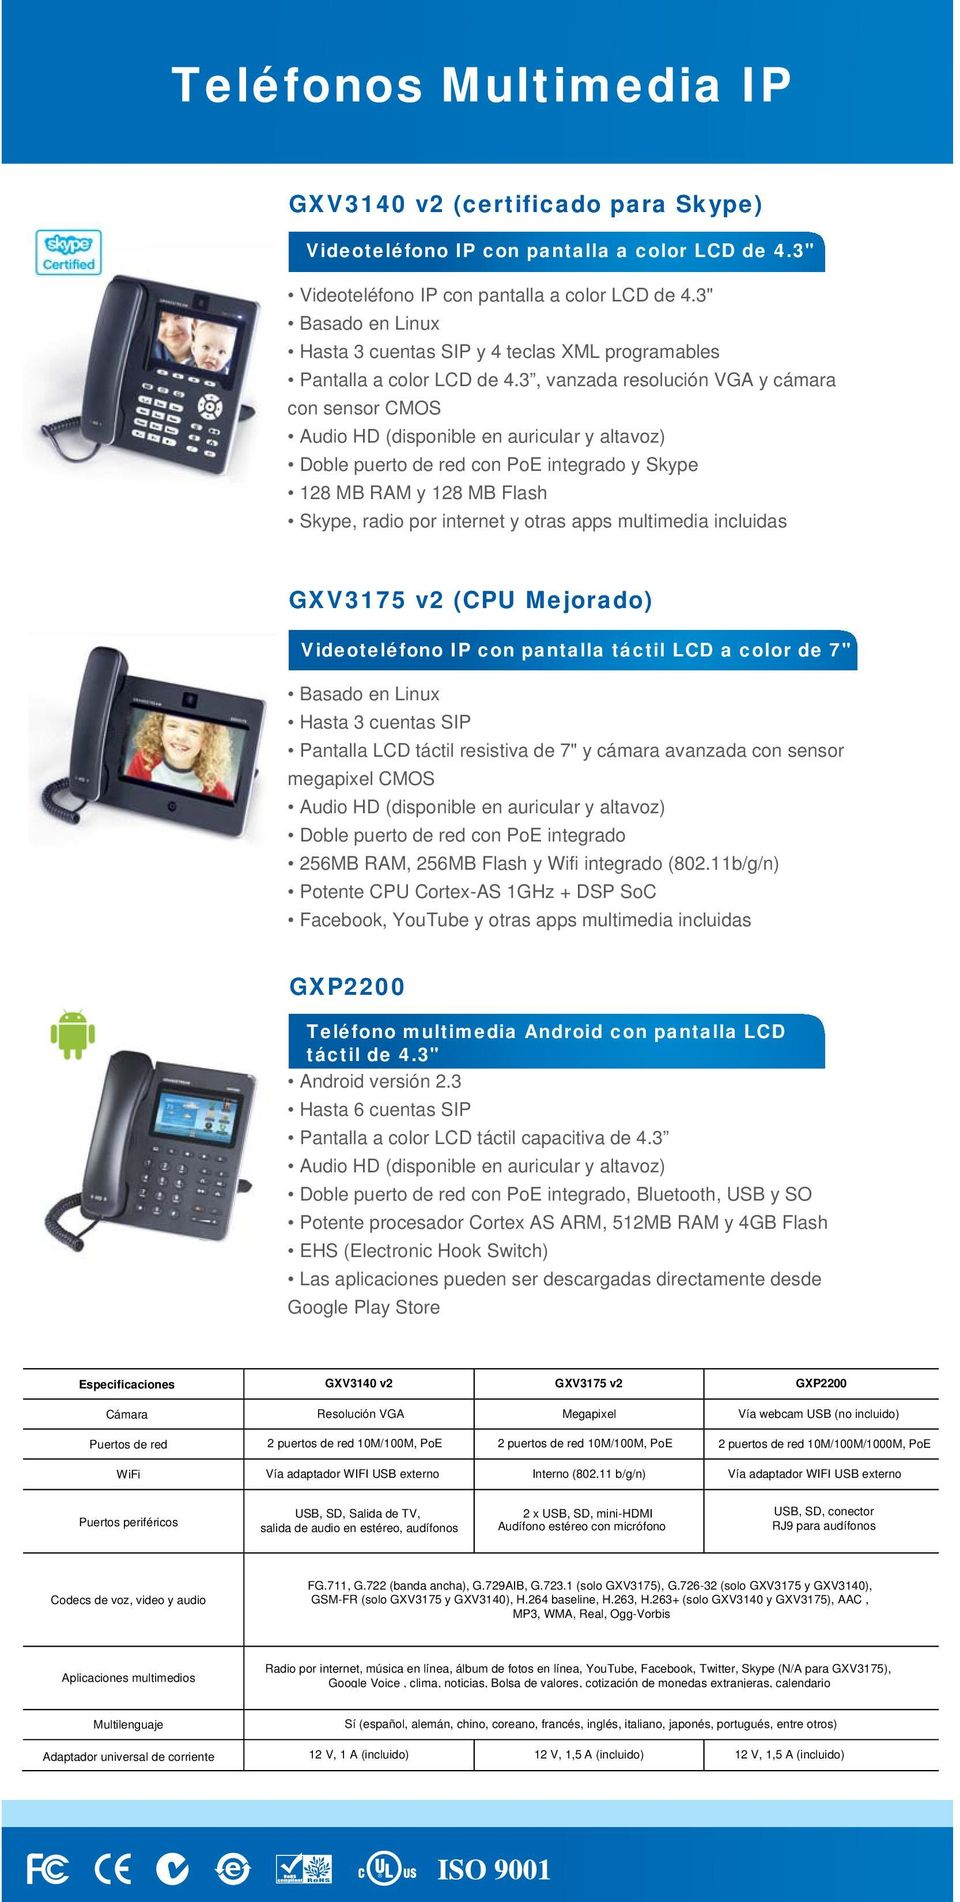 3, vanzada resolución VGA y cámara con sensor CMOS Doble puerto de red con PoE integrado y Skype 128 MB RAM y 128 MB Flash Skype, radio por internet y otras apps multimedia incluidas GXV3175 v2 (CPU